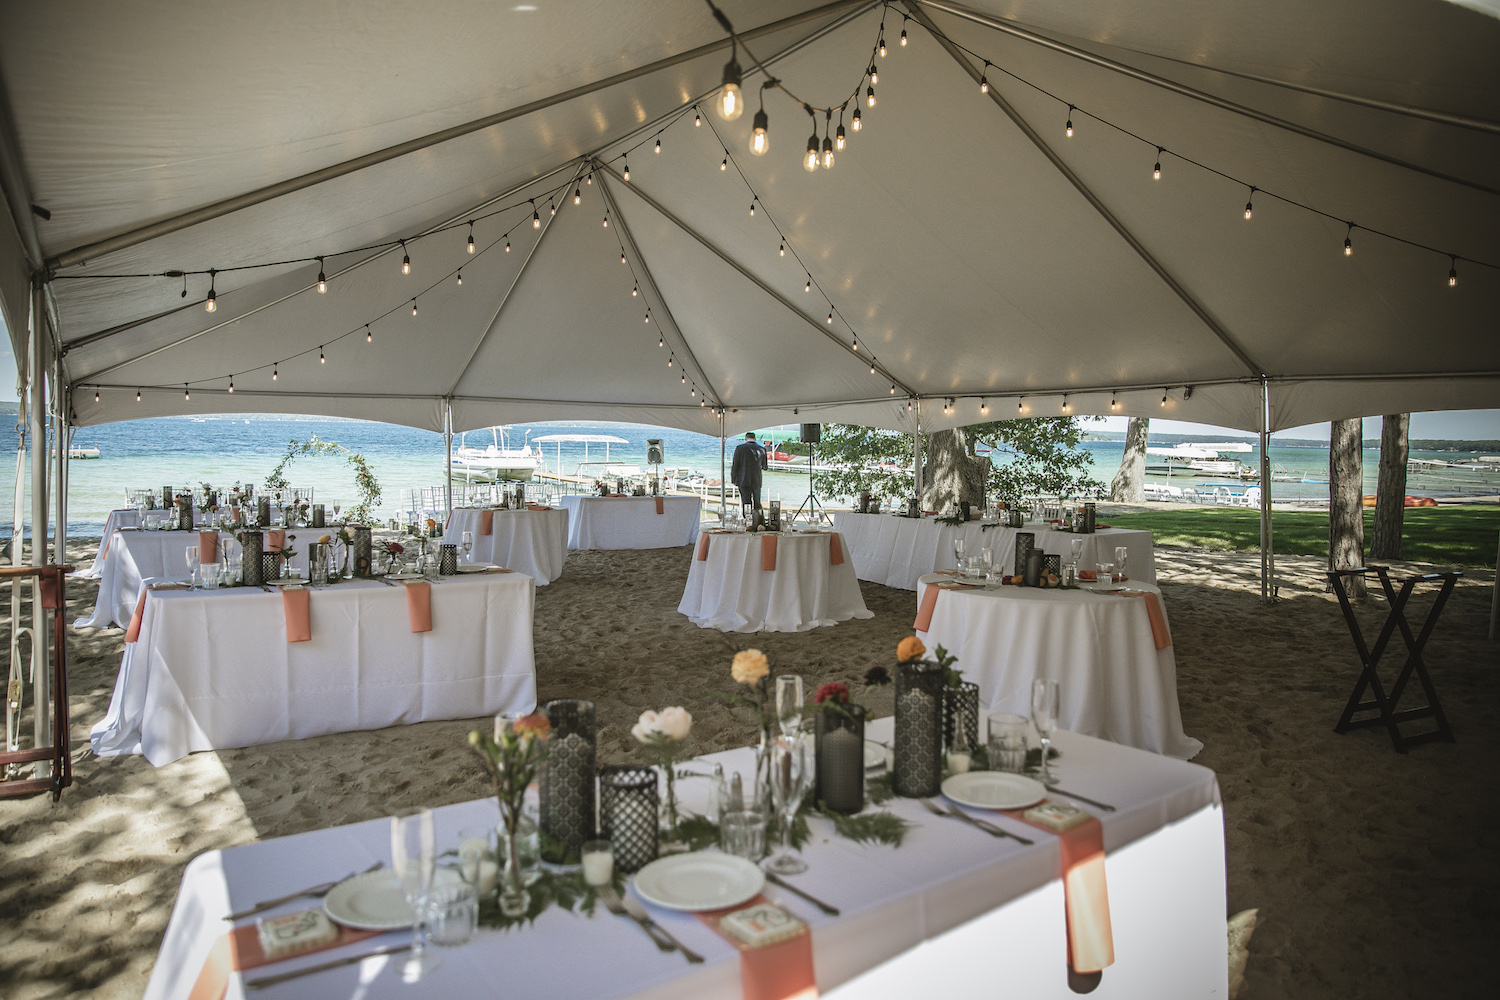 Higgins lake wedding reception tables and tent